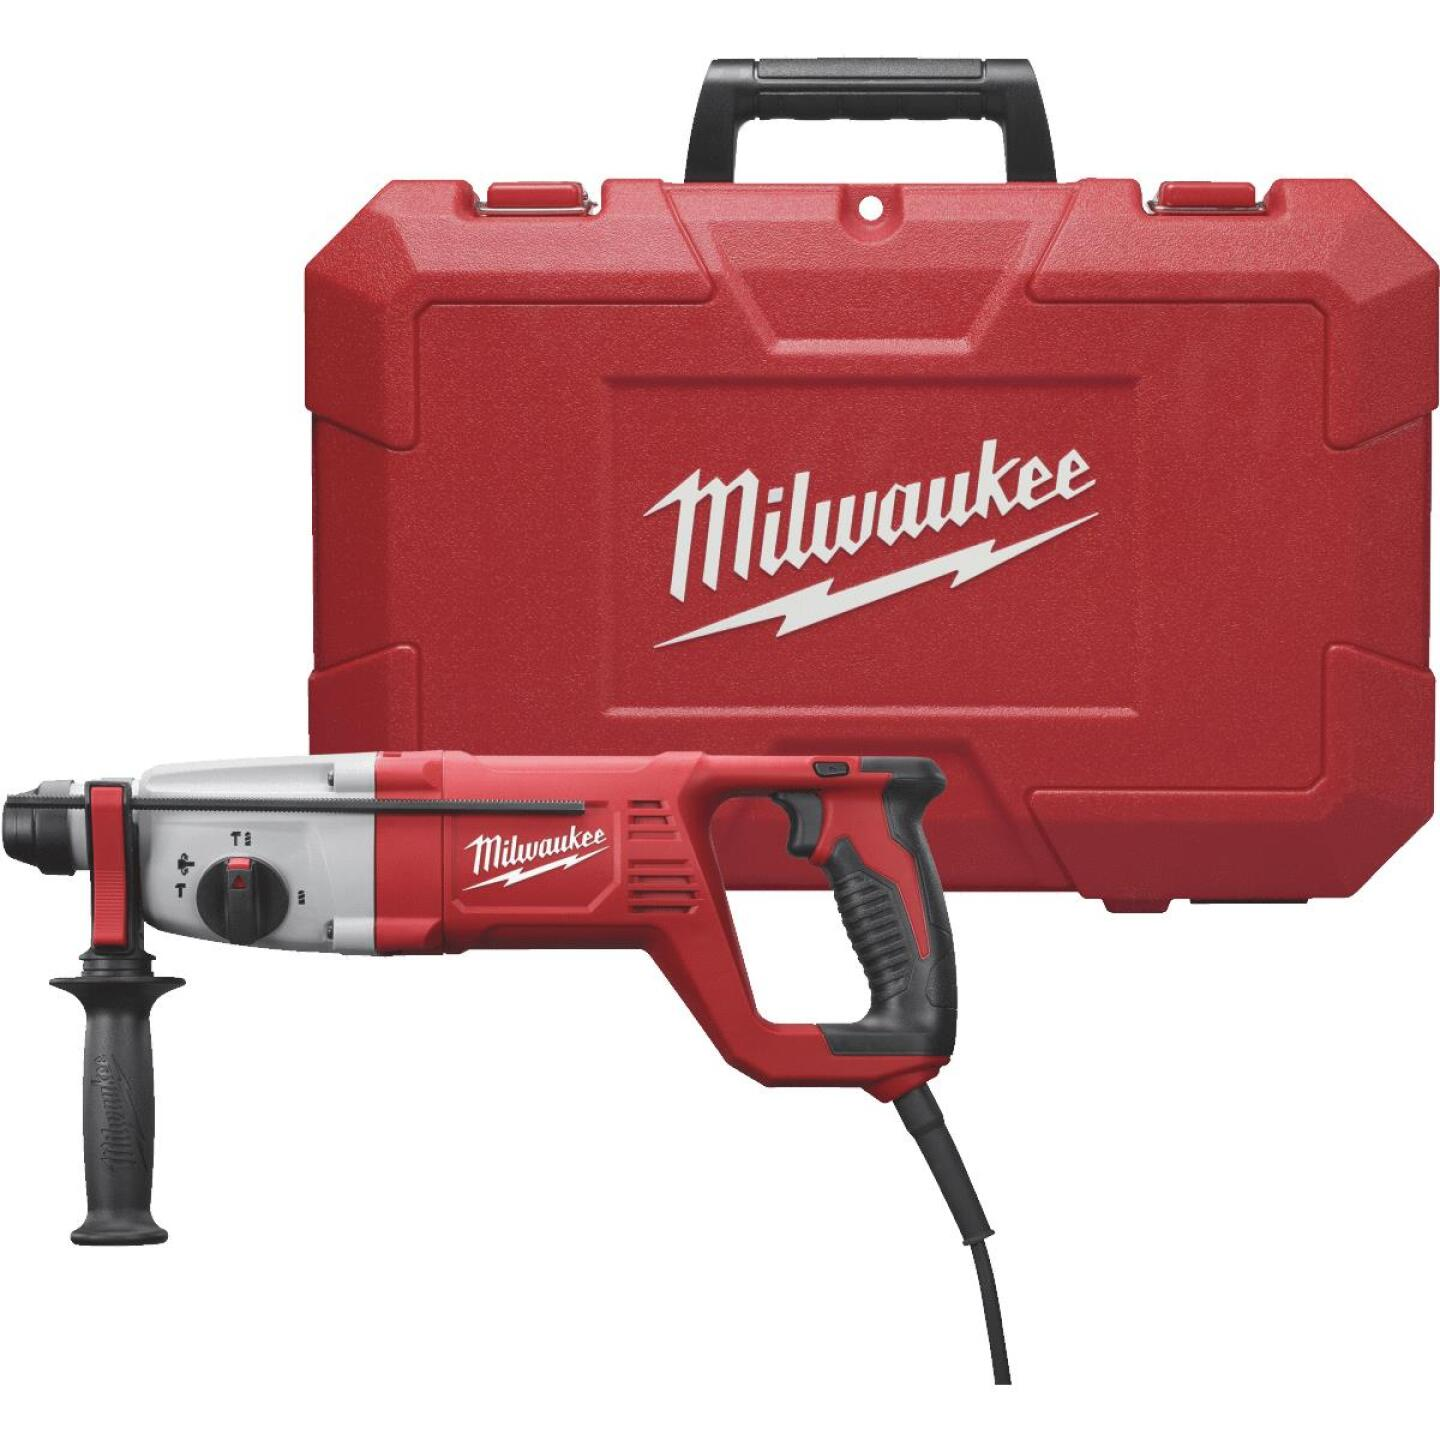 Milwaukee 1 In. SDS-Plus 8.0-Amp Electric Rotary Hammer Drill Image 1